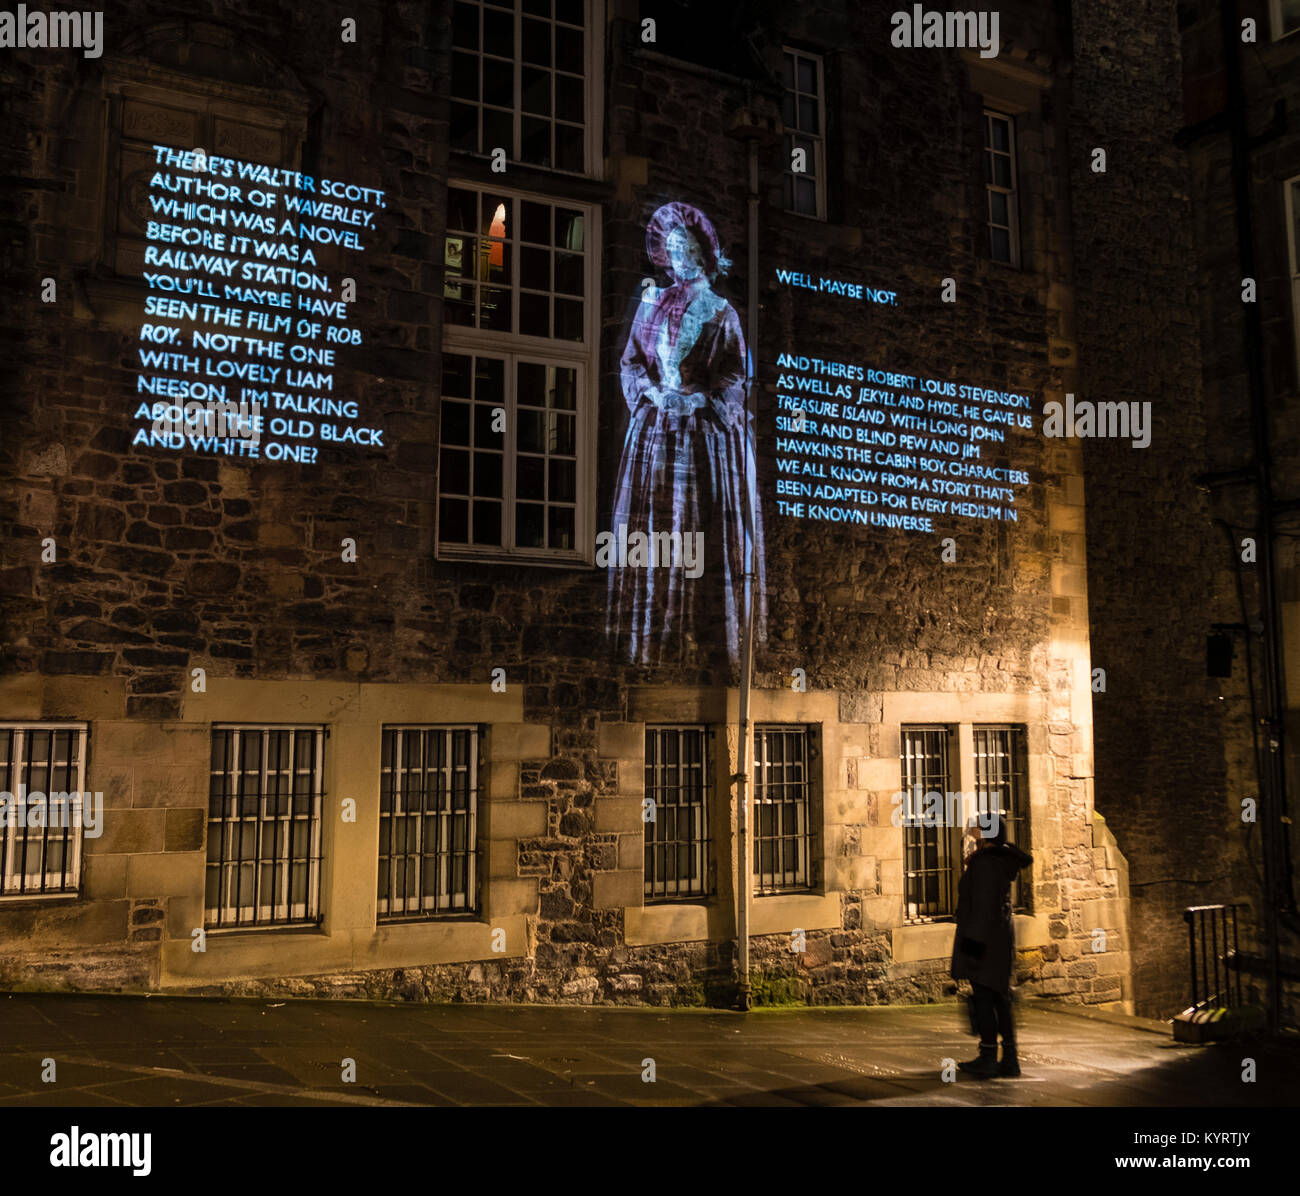 Author Val McDermid's short story  'New Year's Resurrection', Message from the Skies, projected - Stock Image